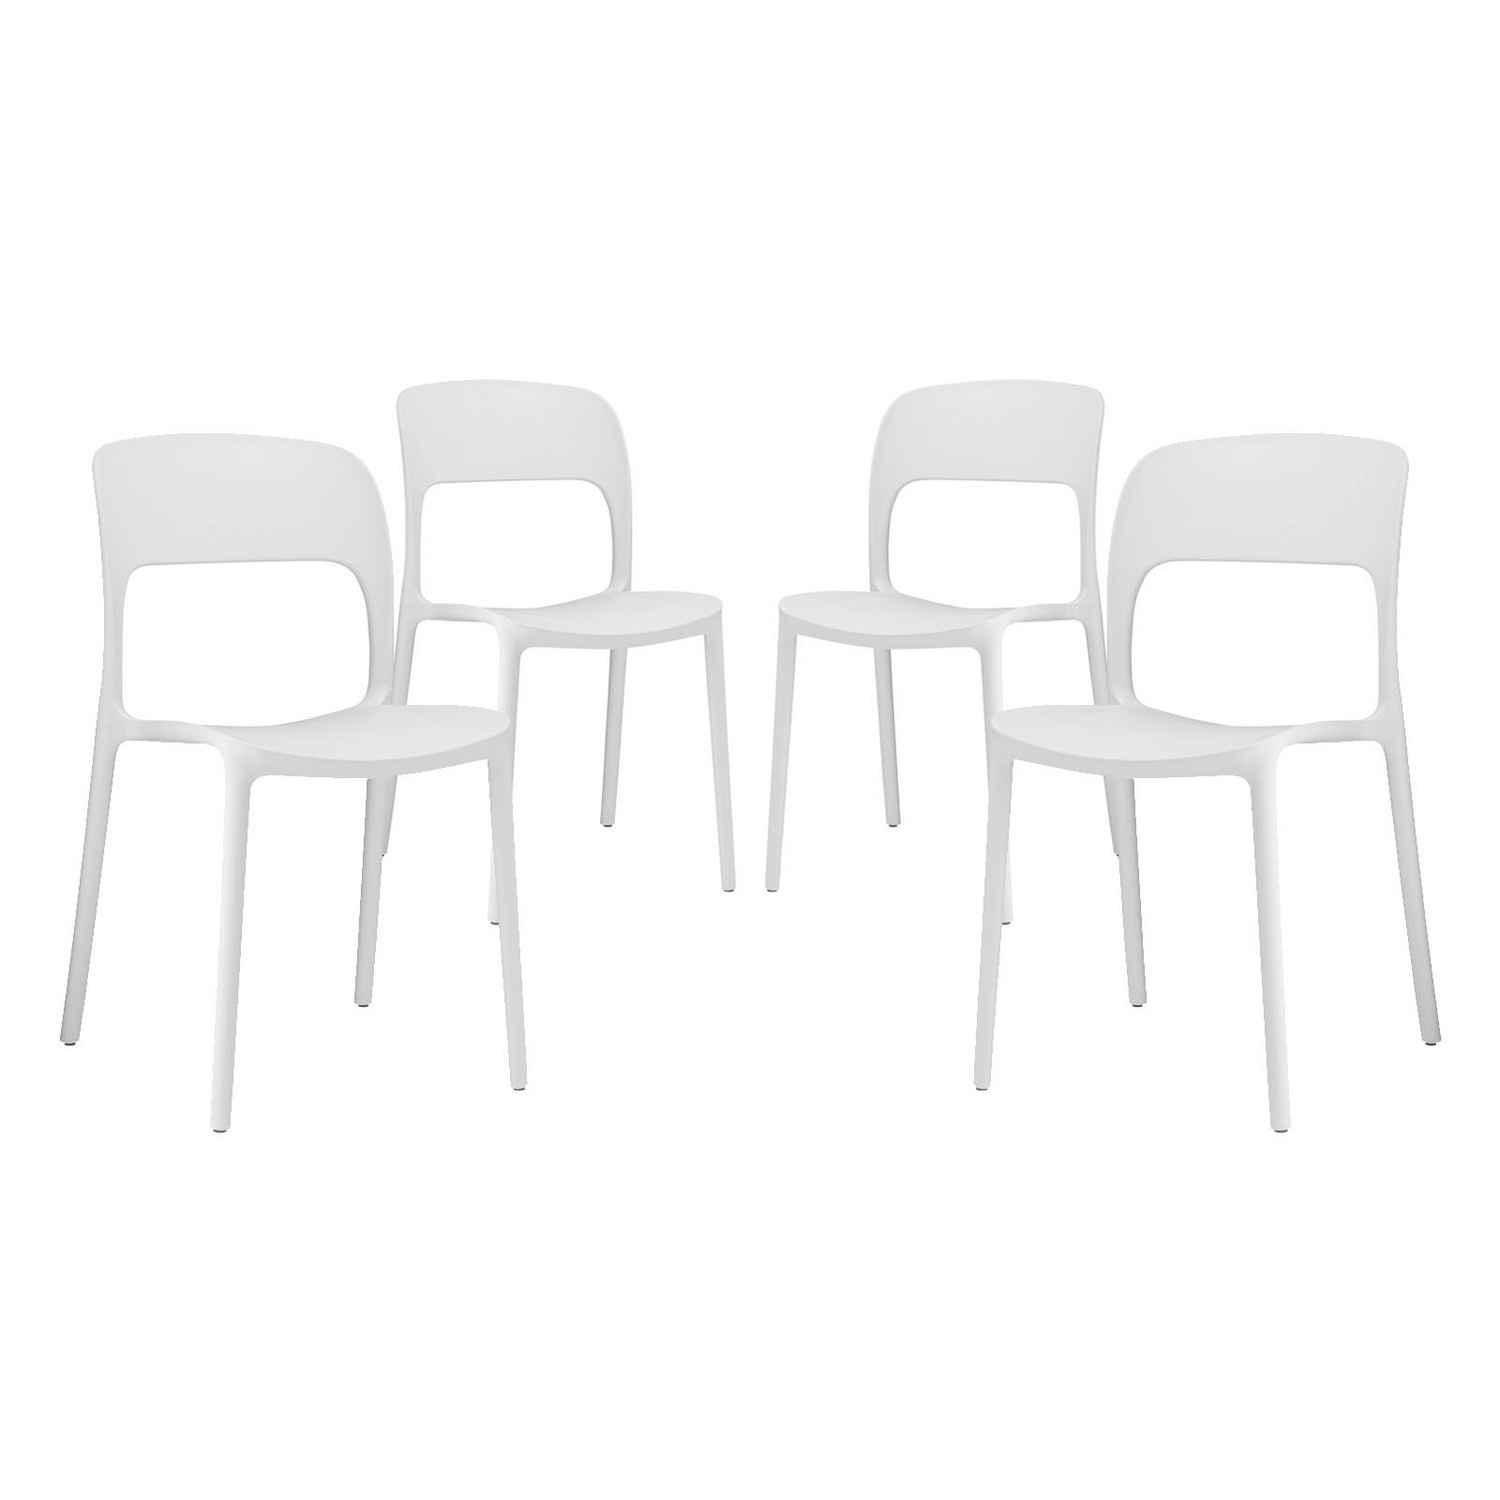 Modway Hop Dining Chair - Set of 4 - White